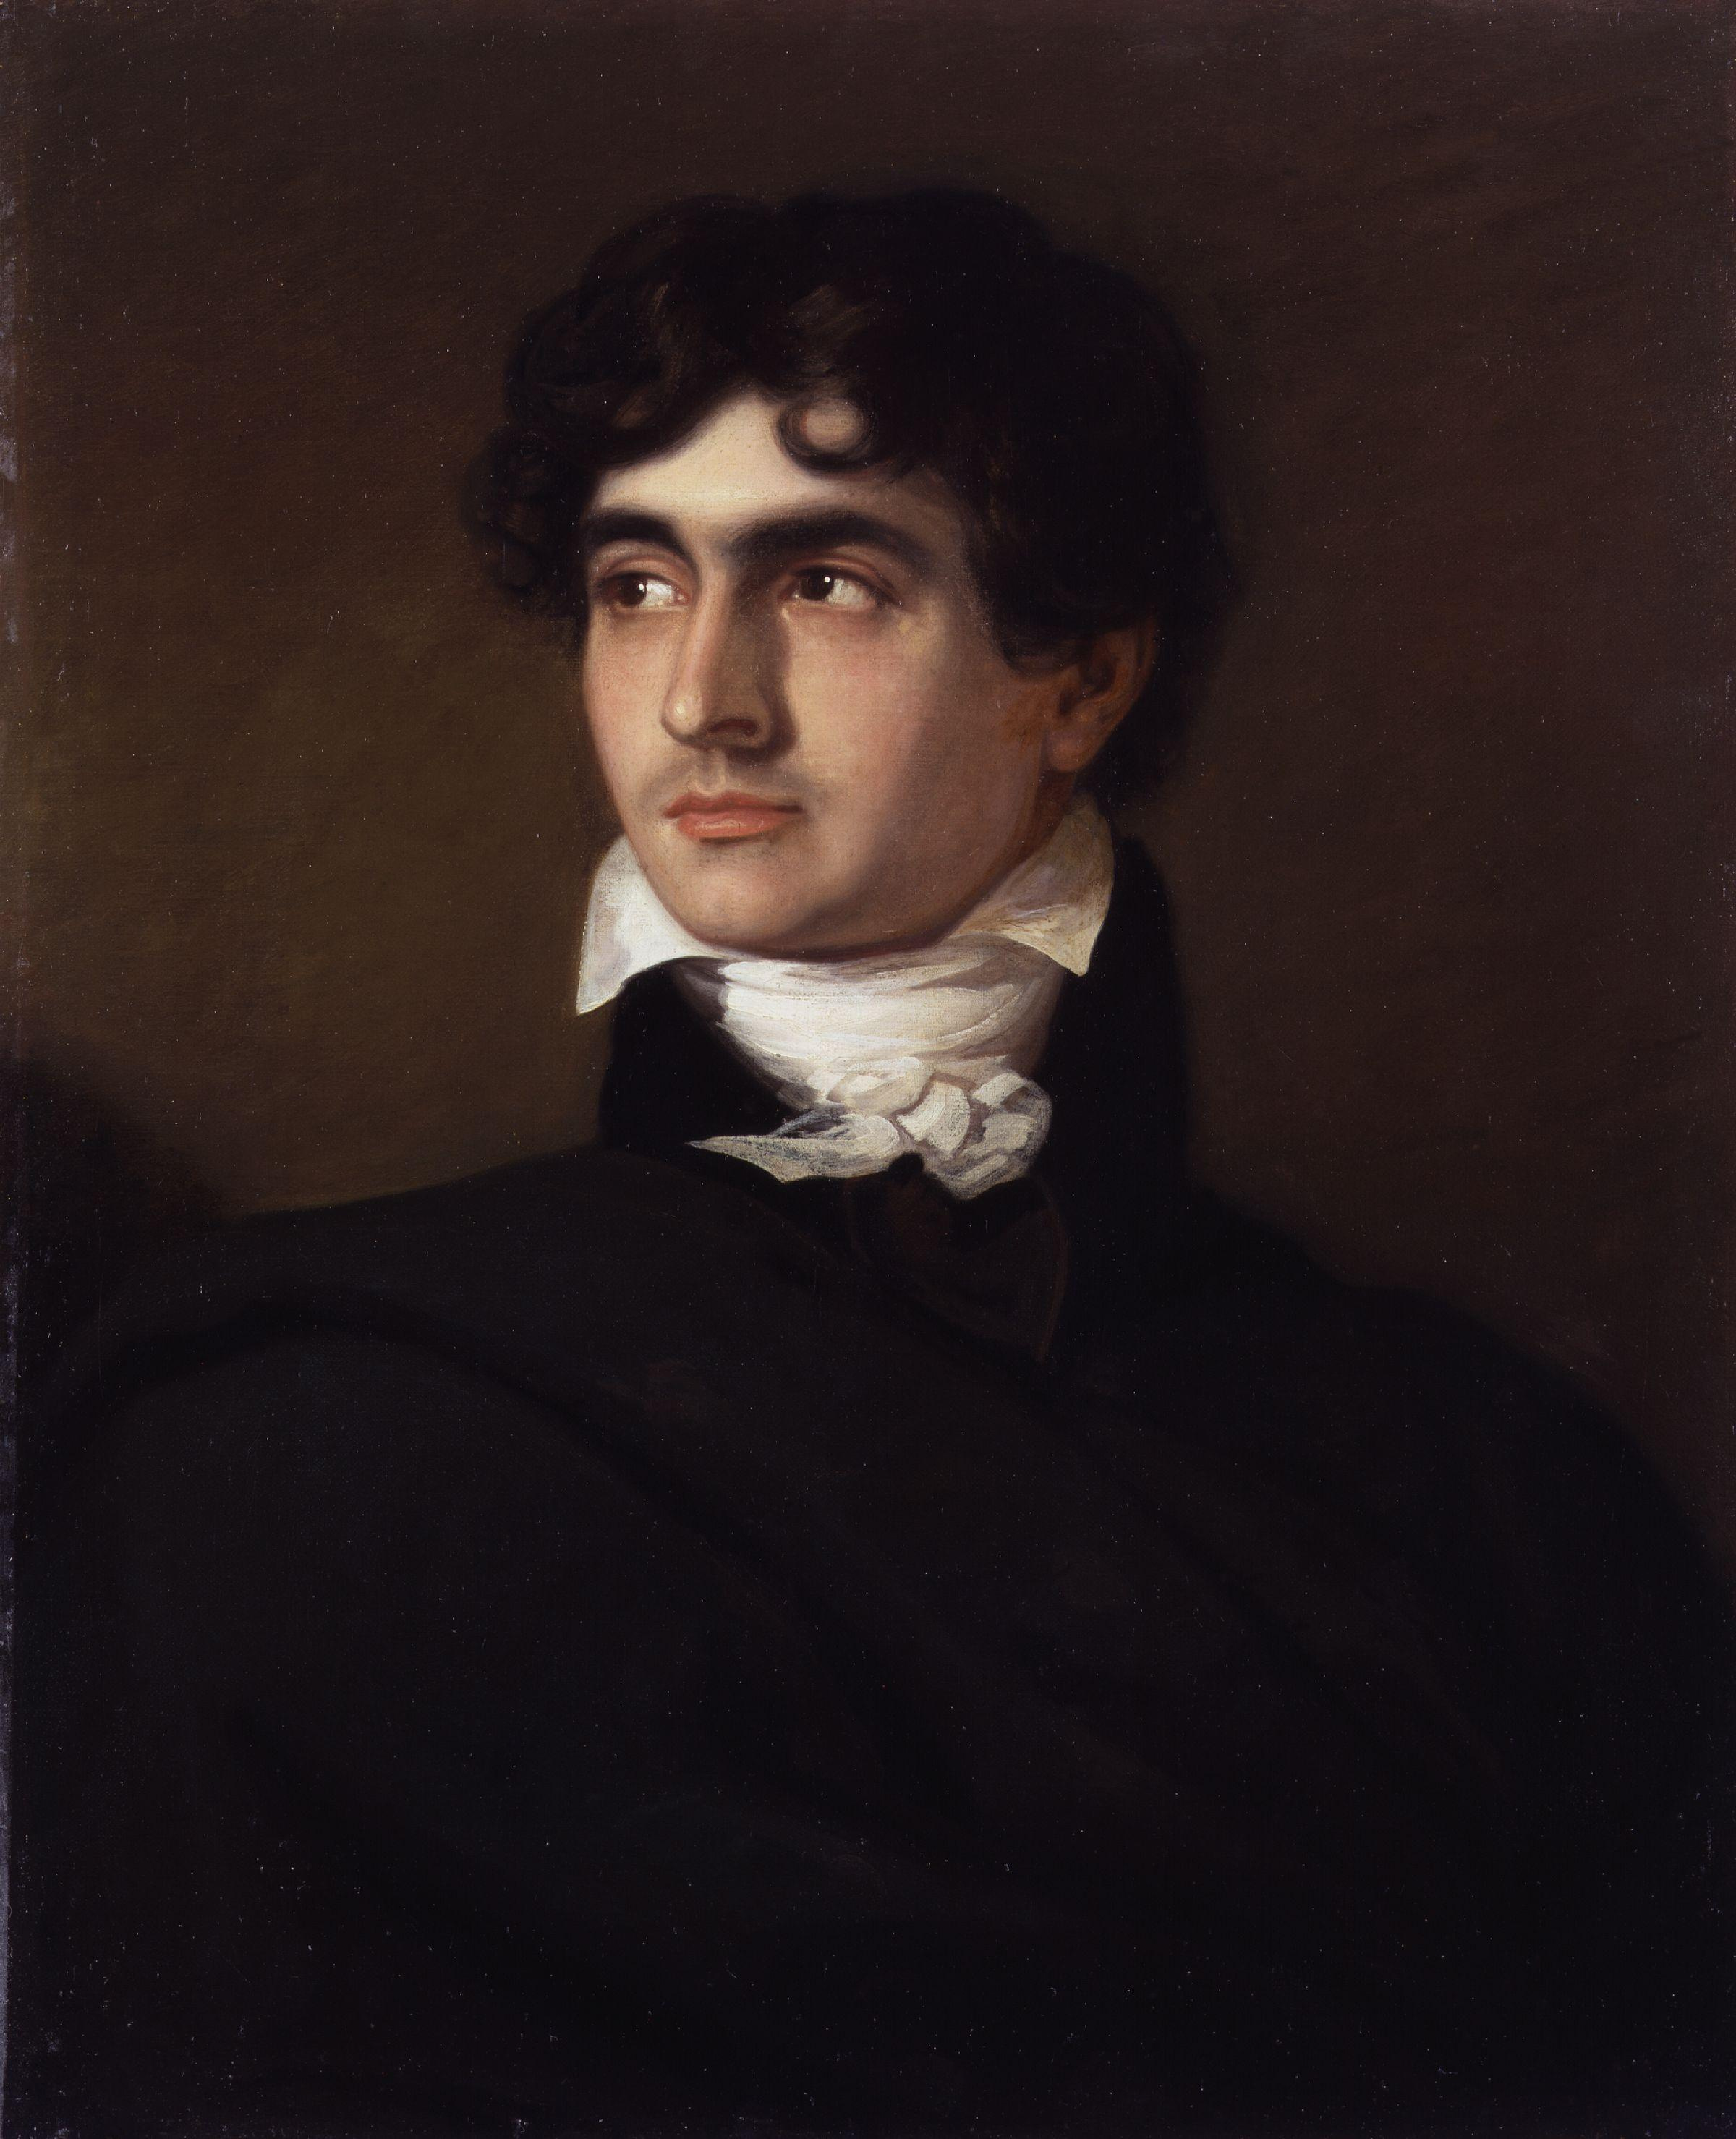 A picture of the author John William Polidori